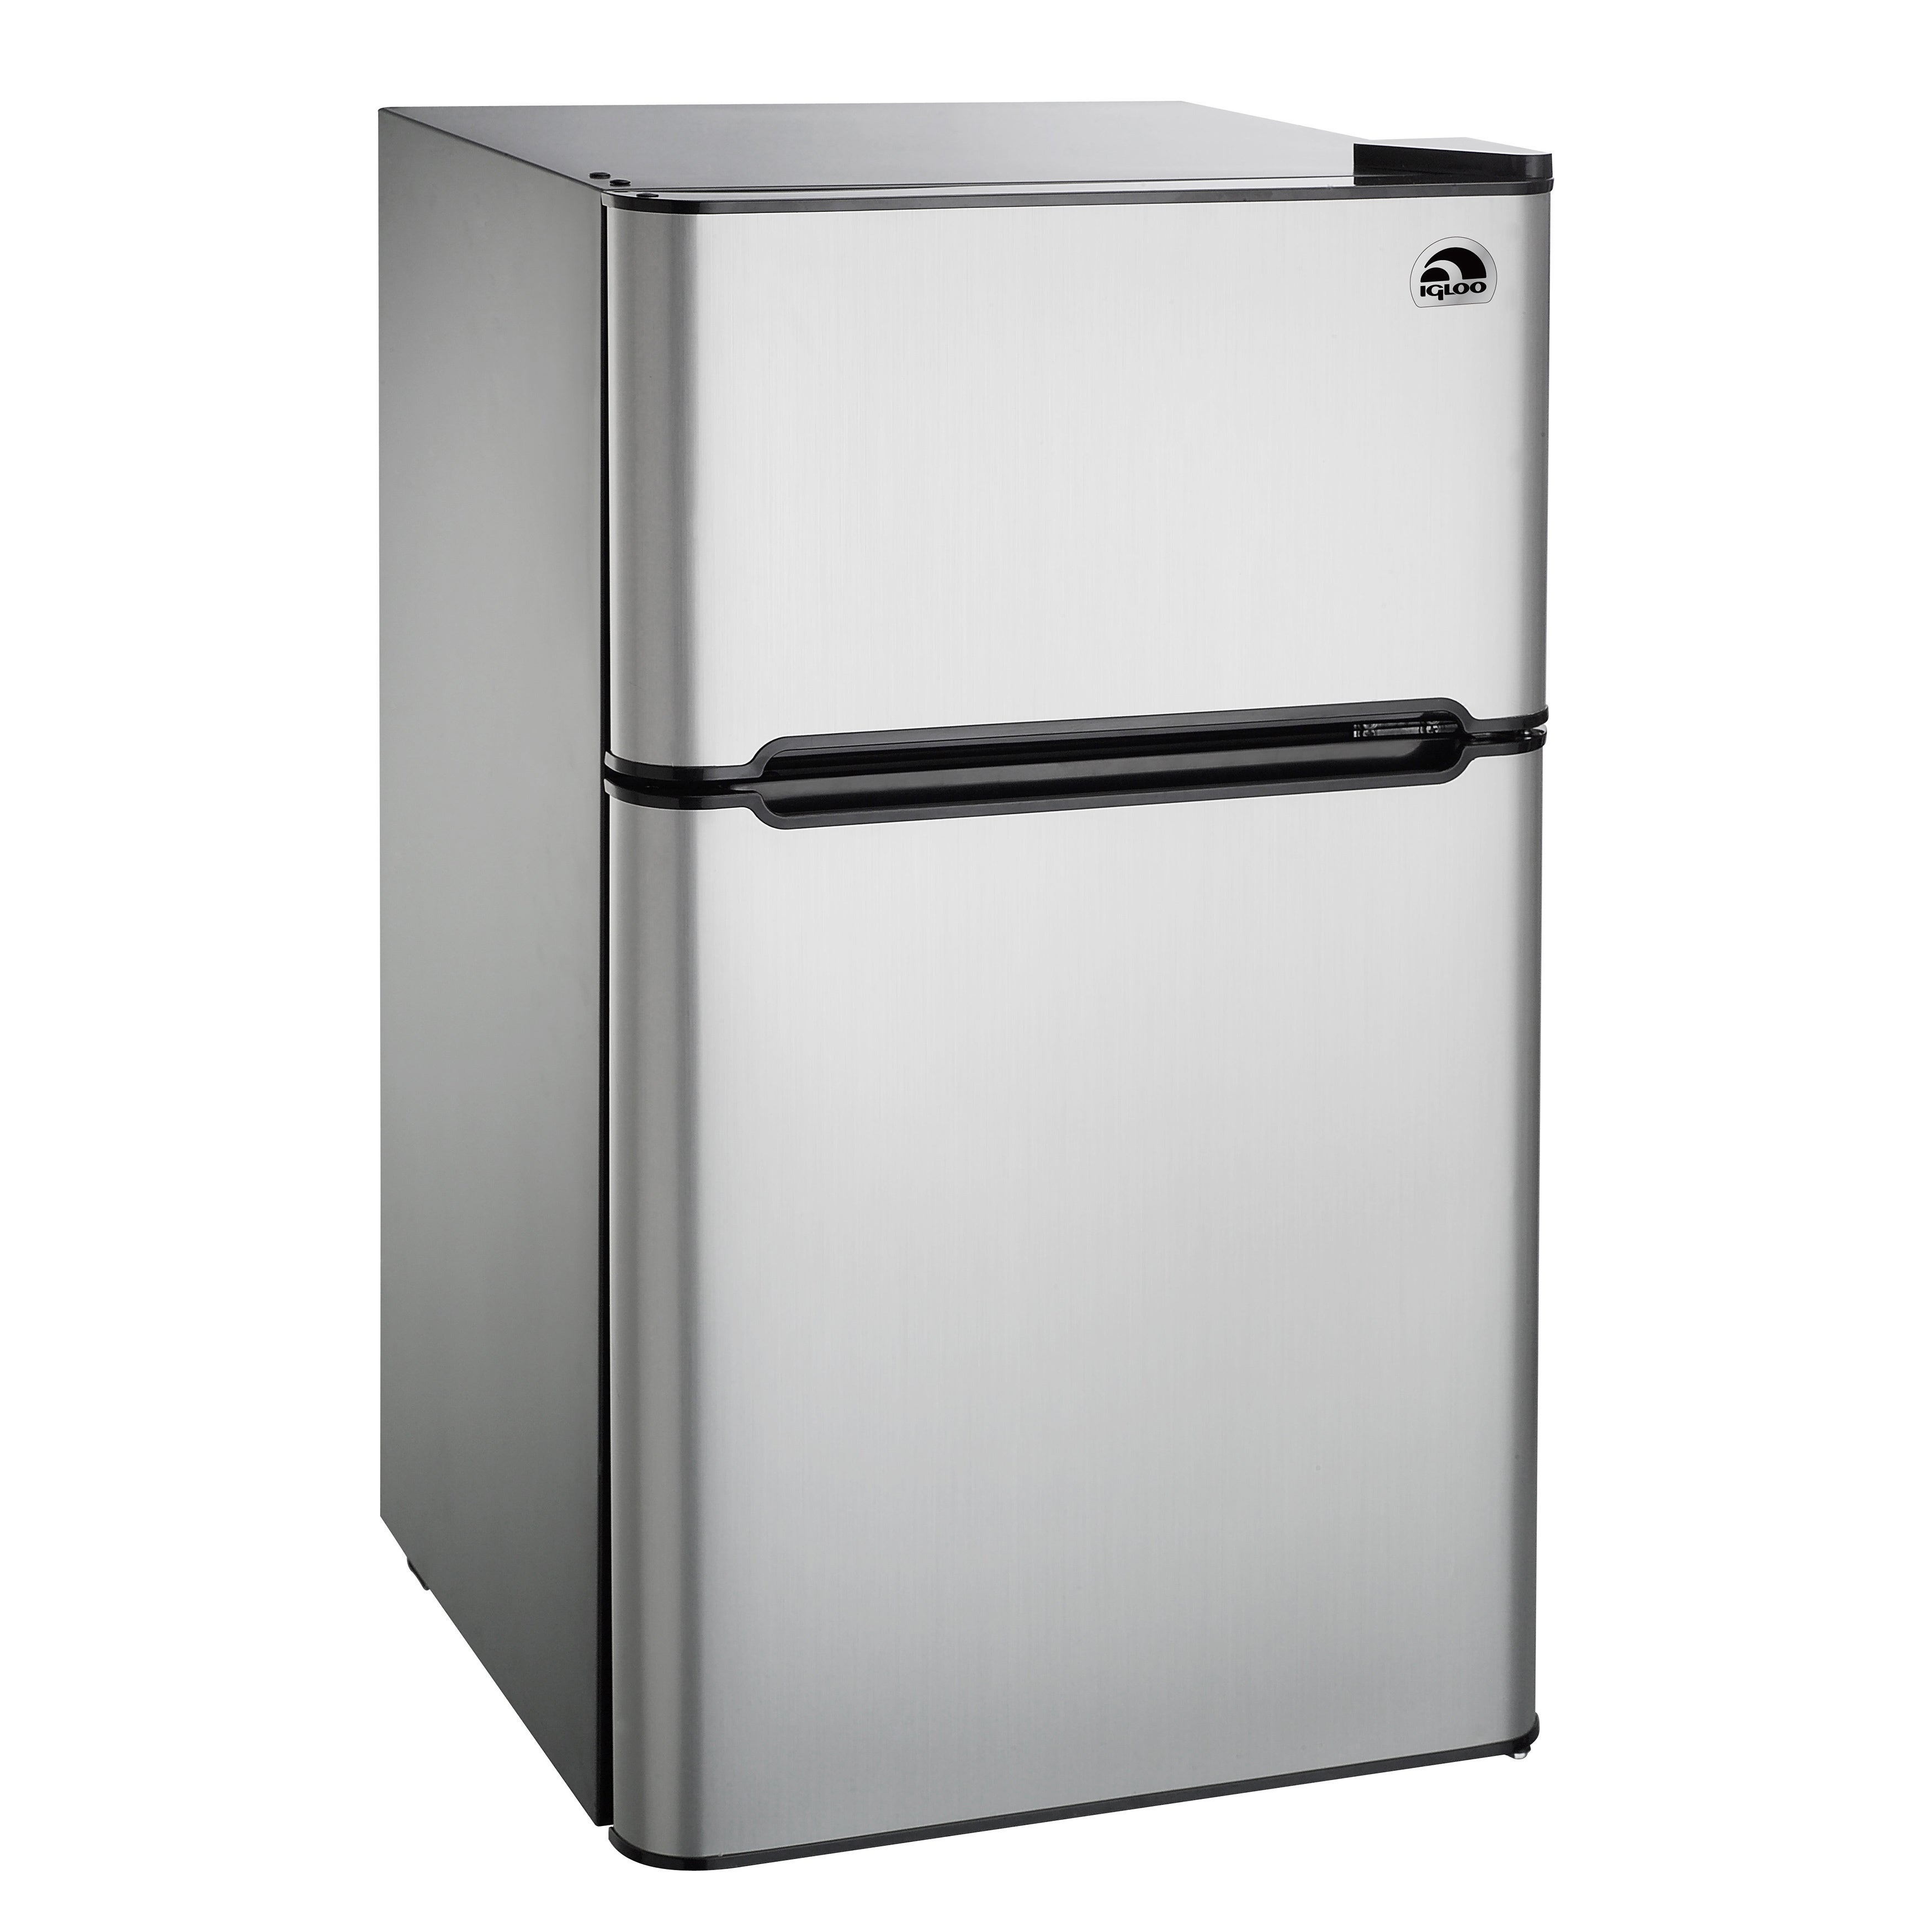 Curtis Igloo Stainless Steel (Silver) 3.2-cubic-foot Refr...